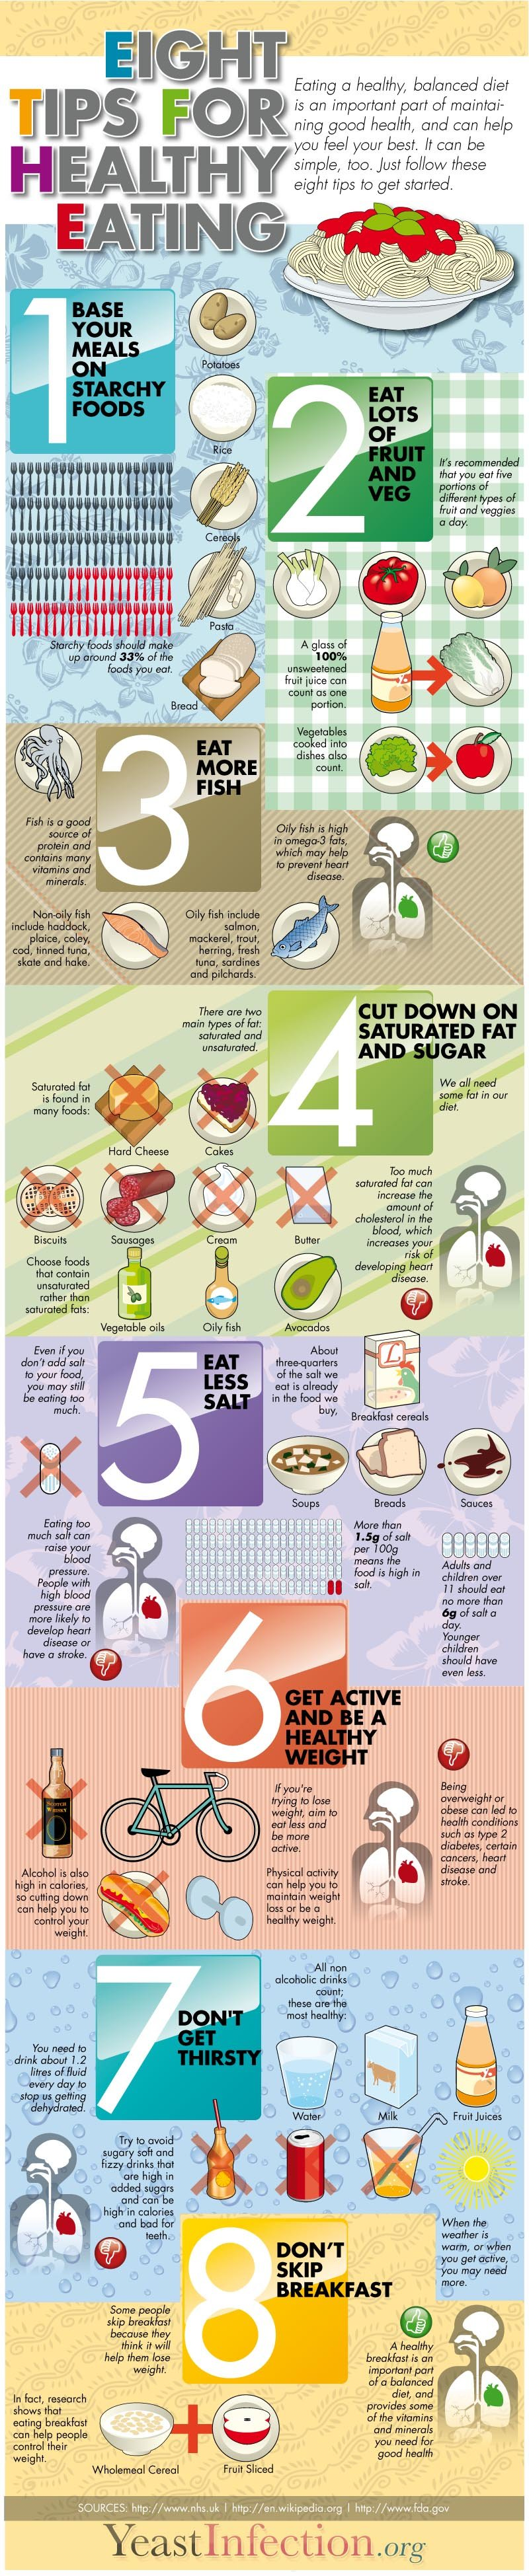 Eight tips for healthy eating #Infographic